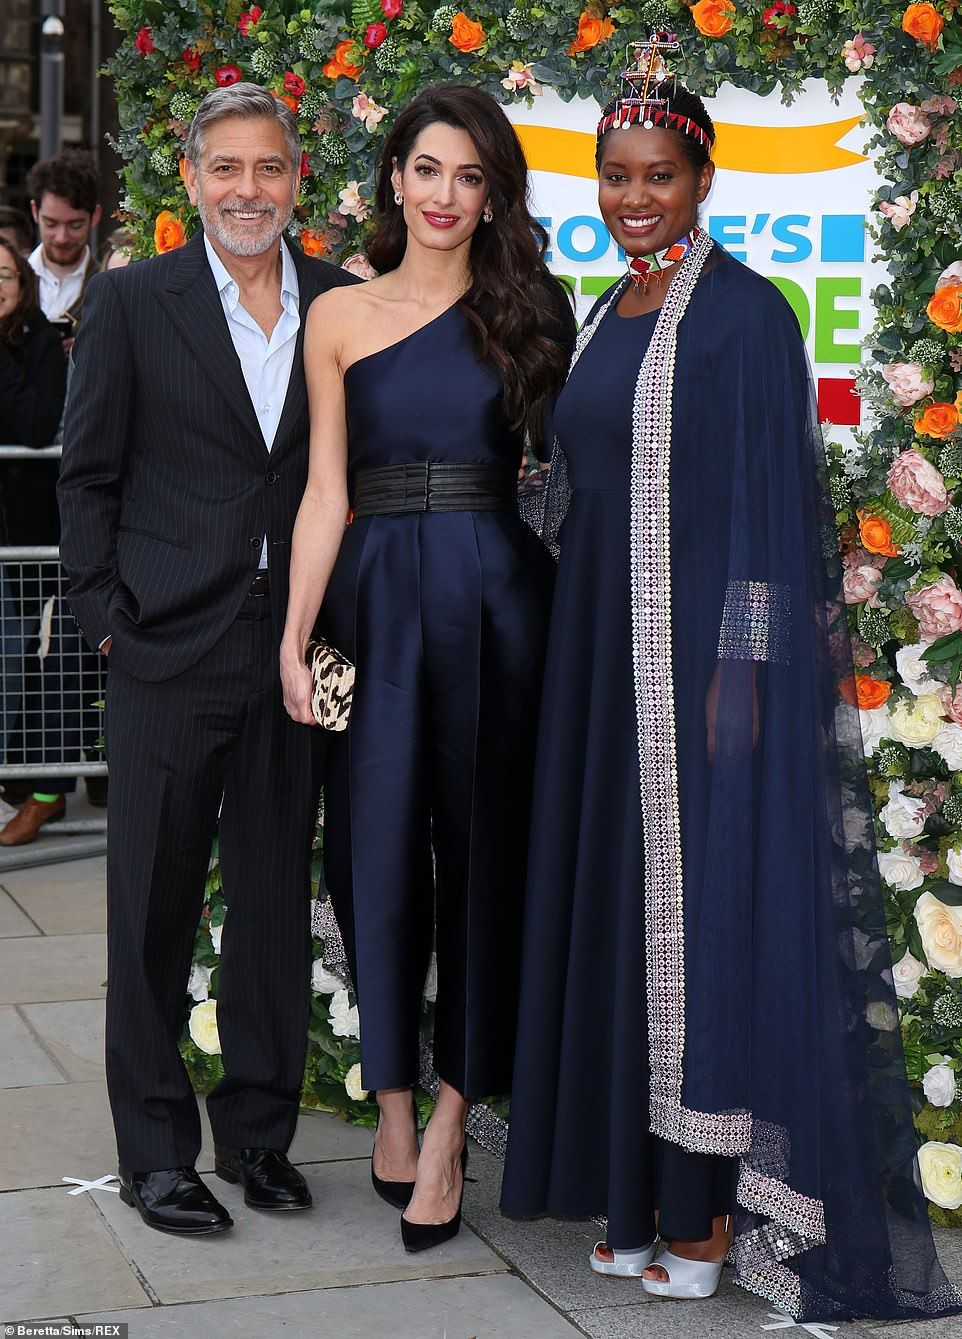 George Clooney poses with stunning wife Amal at event in